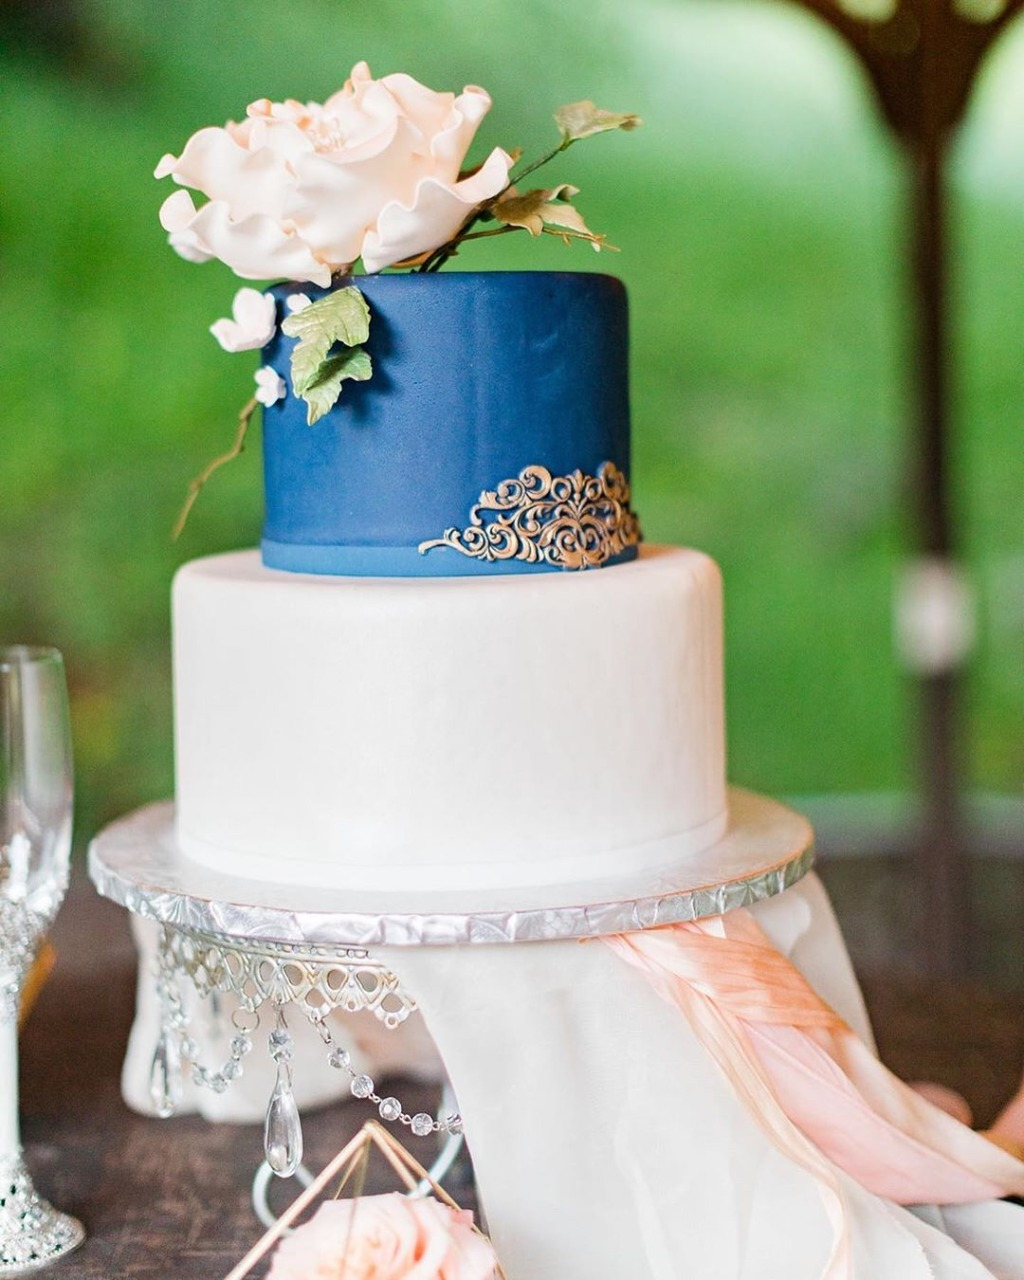 Something Blue! With Antique Silver Chandeliers! Wedding Cake Stand by Opulent Treasures • Wedding cake by @cakedelight • Photography